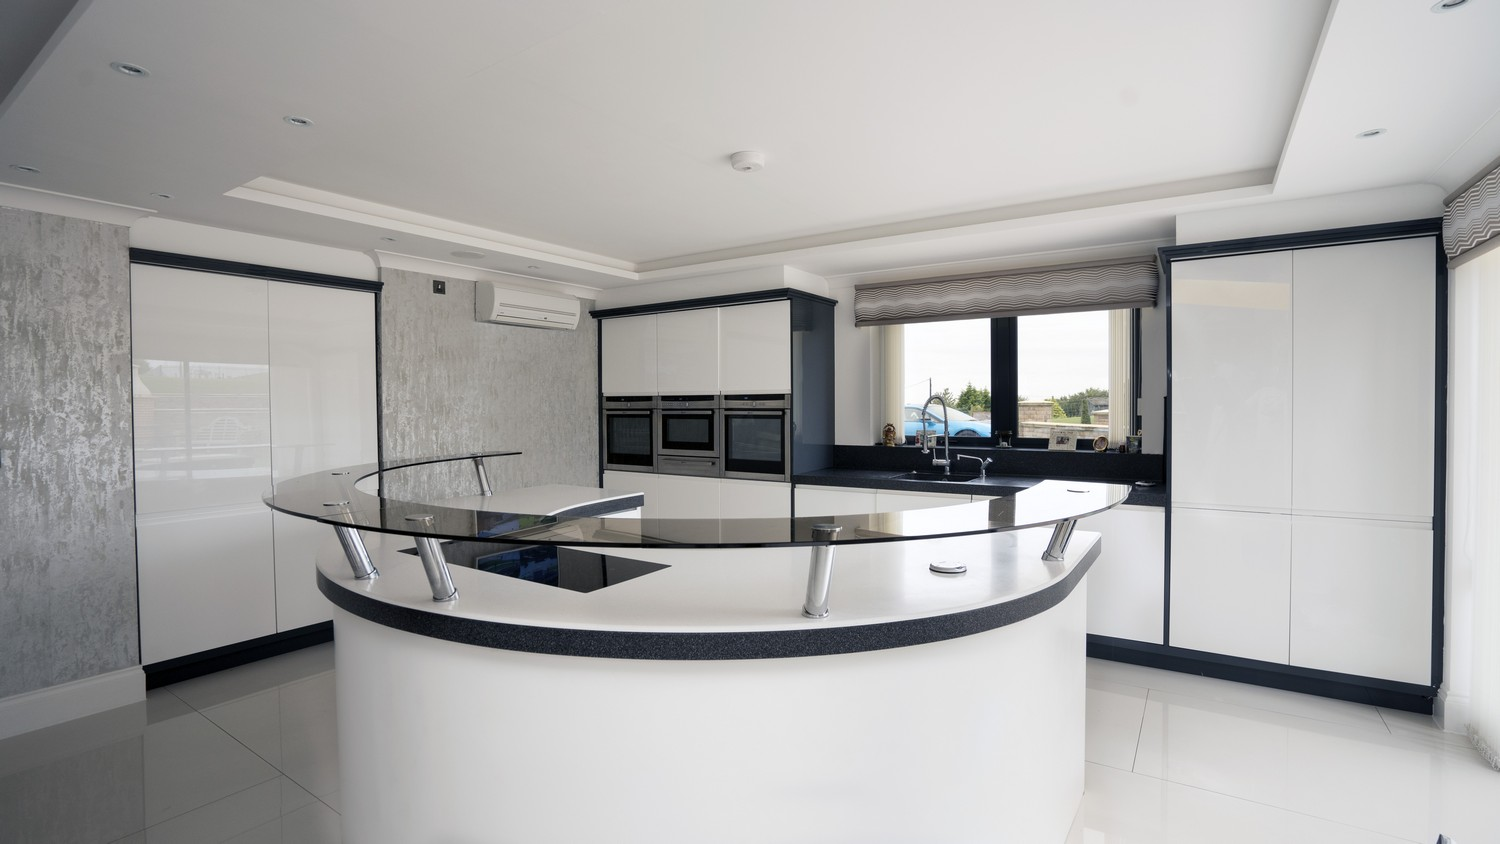 Gloss White Handle-less kitchen supplied and fitted in Aughton, Liverpool. This kitchen featuring a circular island at the center fo the kitchen a great space for both entertaining and dining.